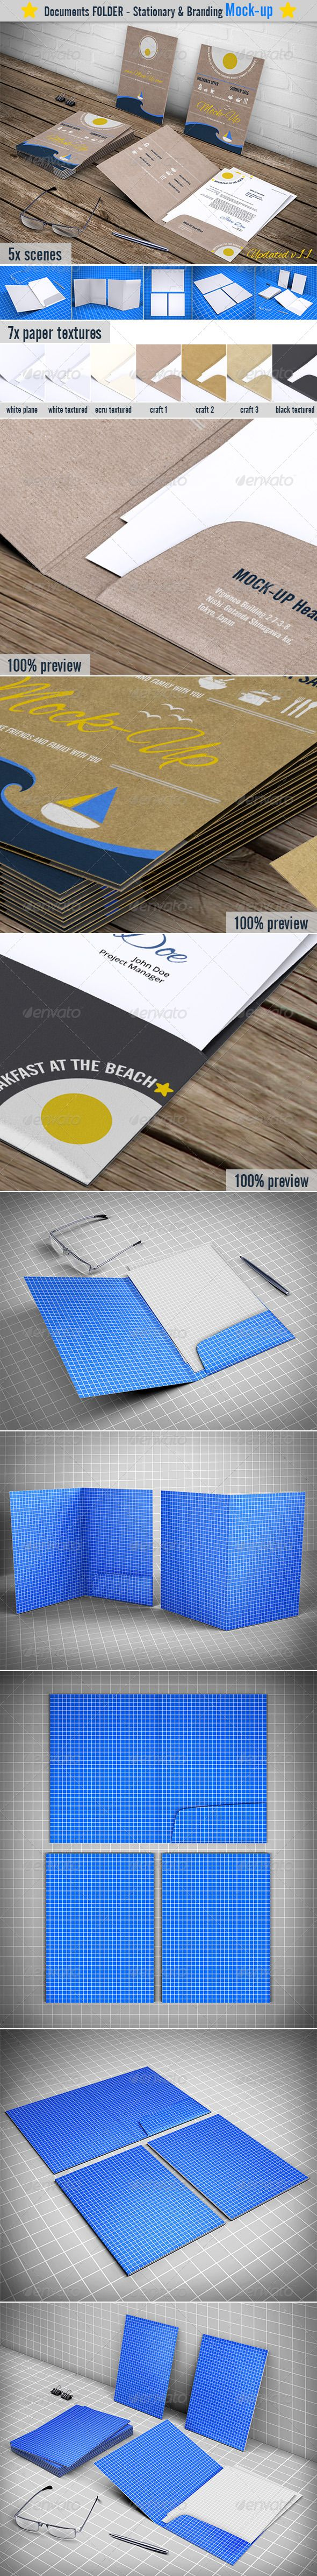 File Folder / Document Folder Mock-up - Print Product Mock-Ups